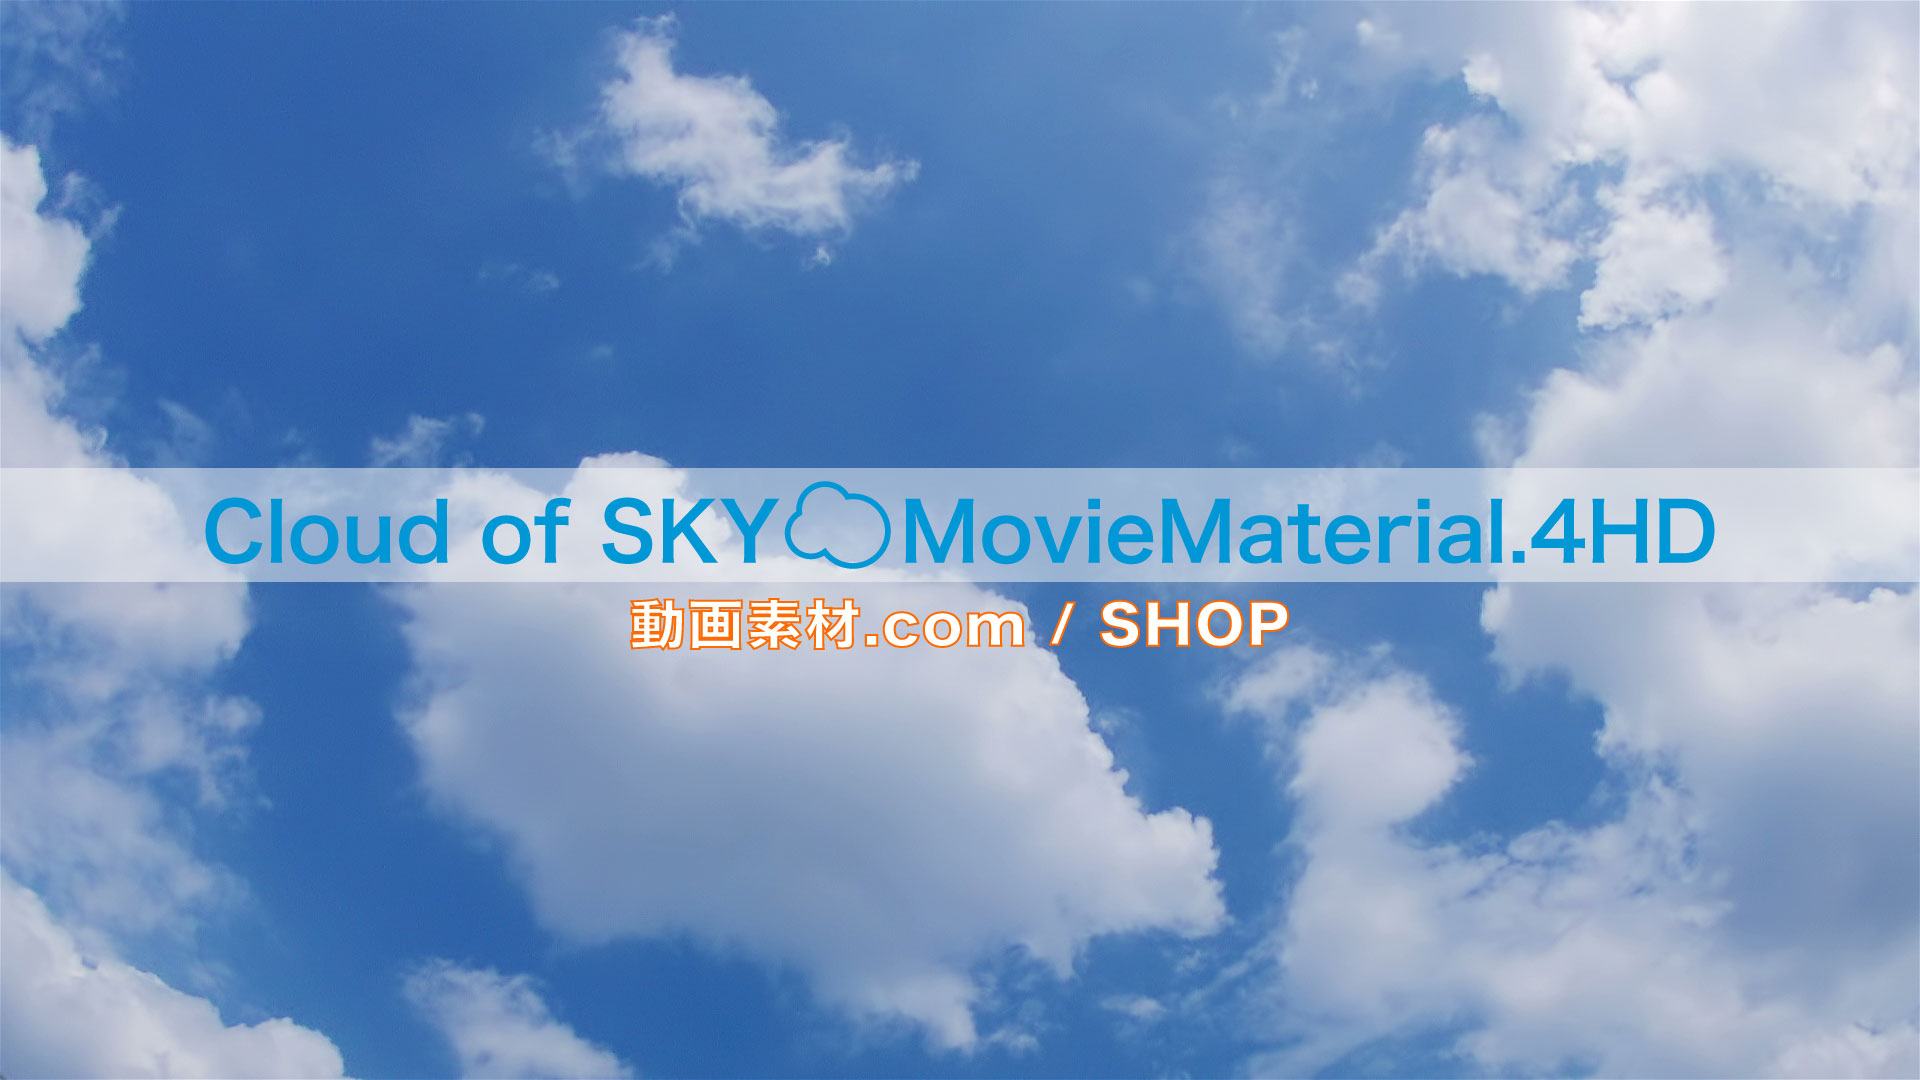 Cloud of SKY MovieMaterial.4HD 空と雲フルハイビジョン1920×1080p映像素材集image4